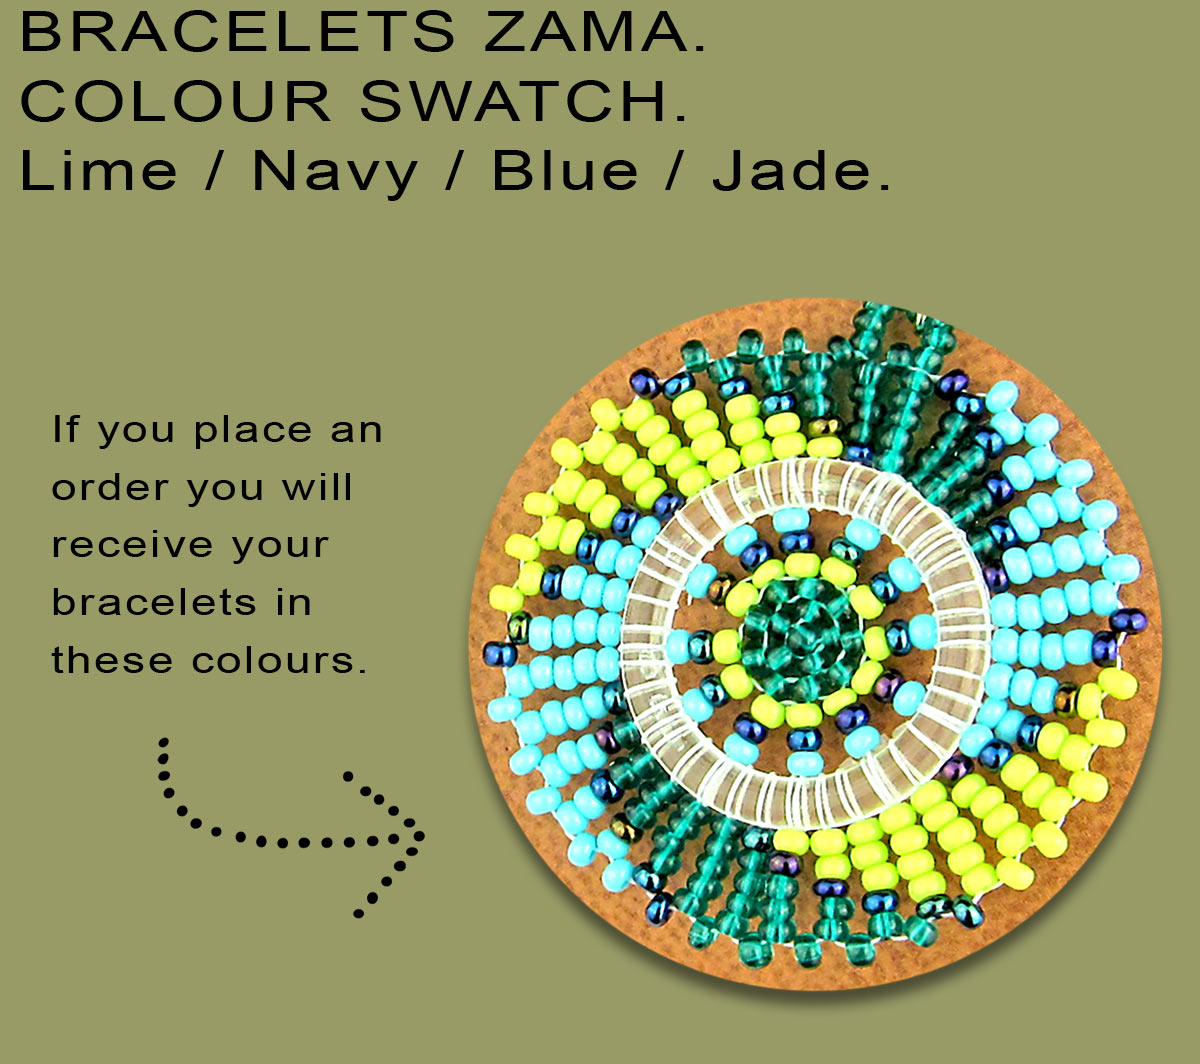 African Beaded Bracelets Zama Lime Navy Blue Jade